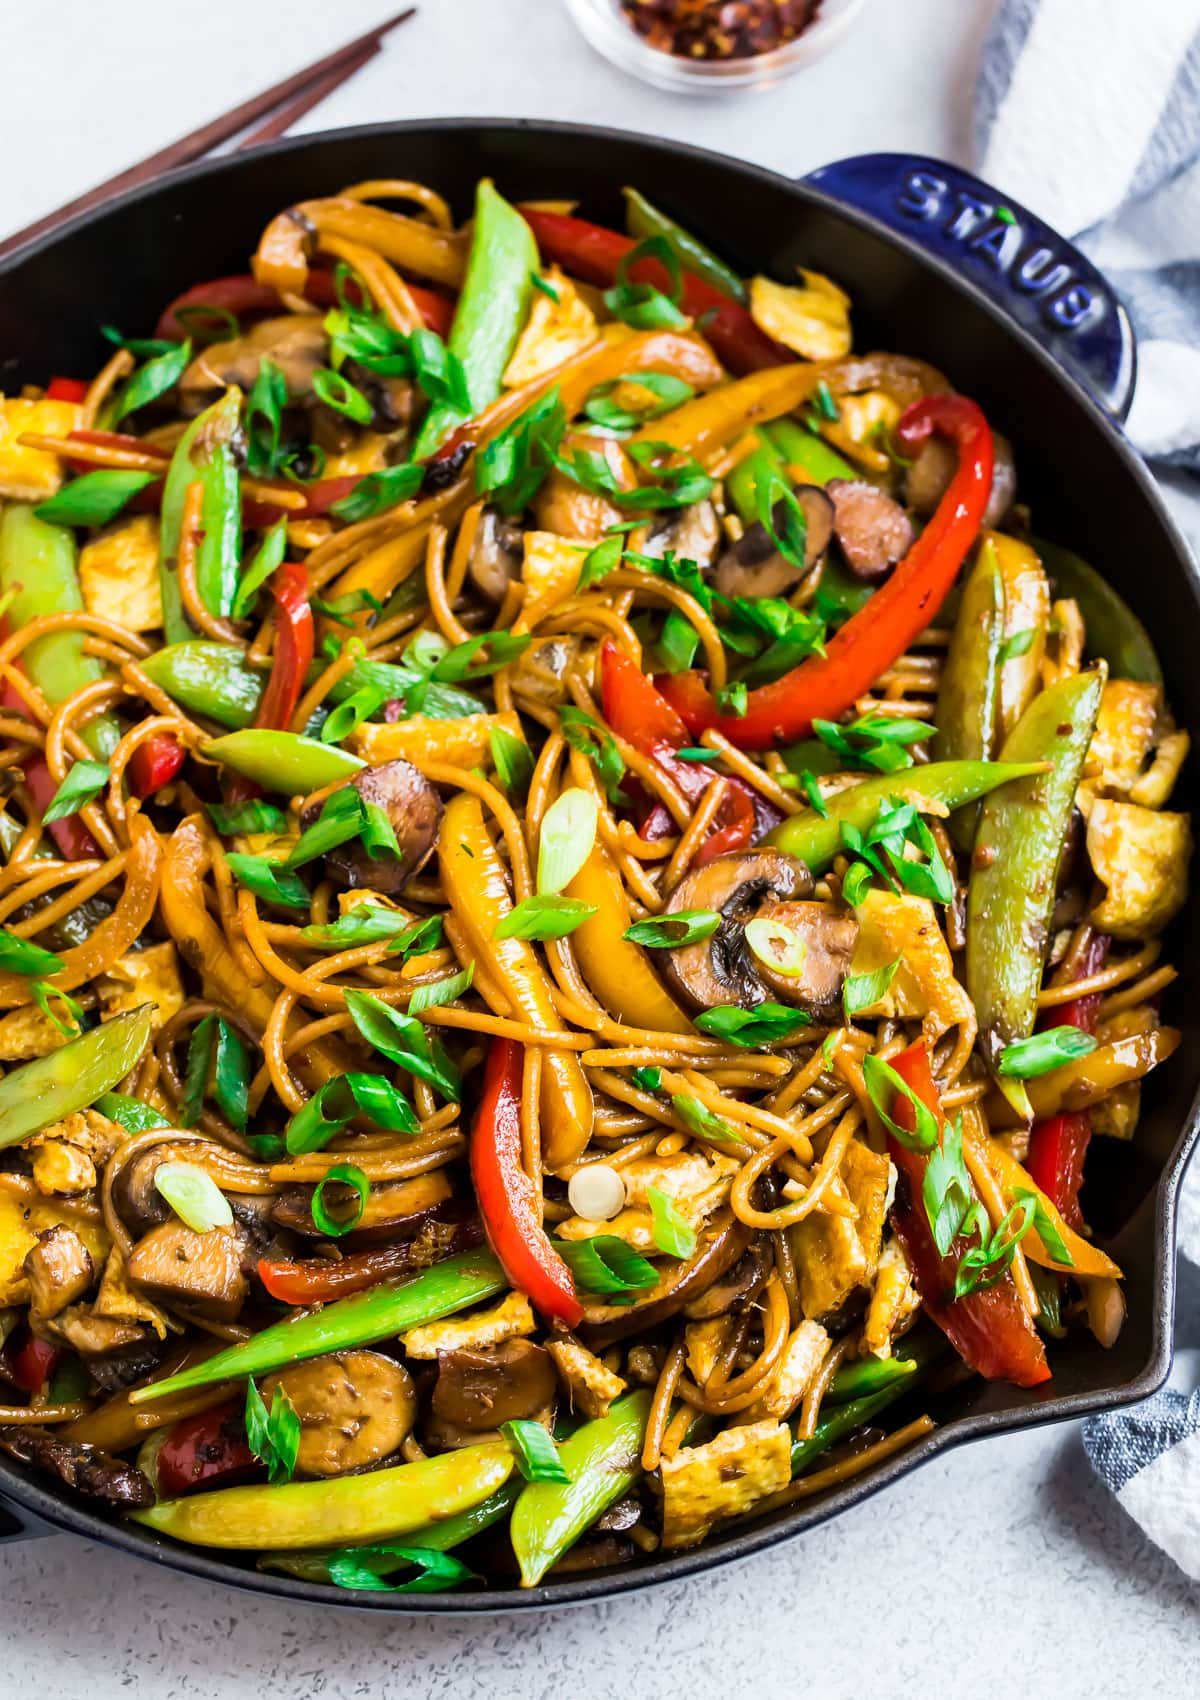 Healthy vegetable lo mein in a skillet